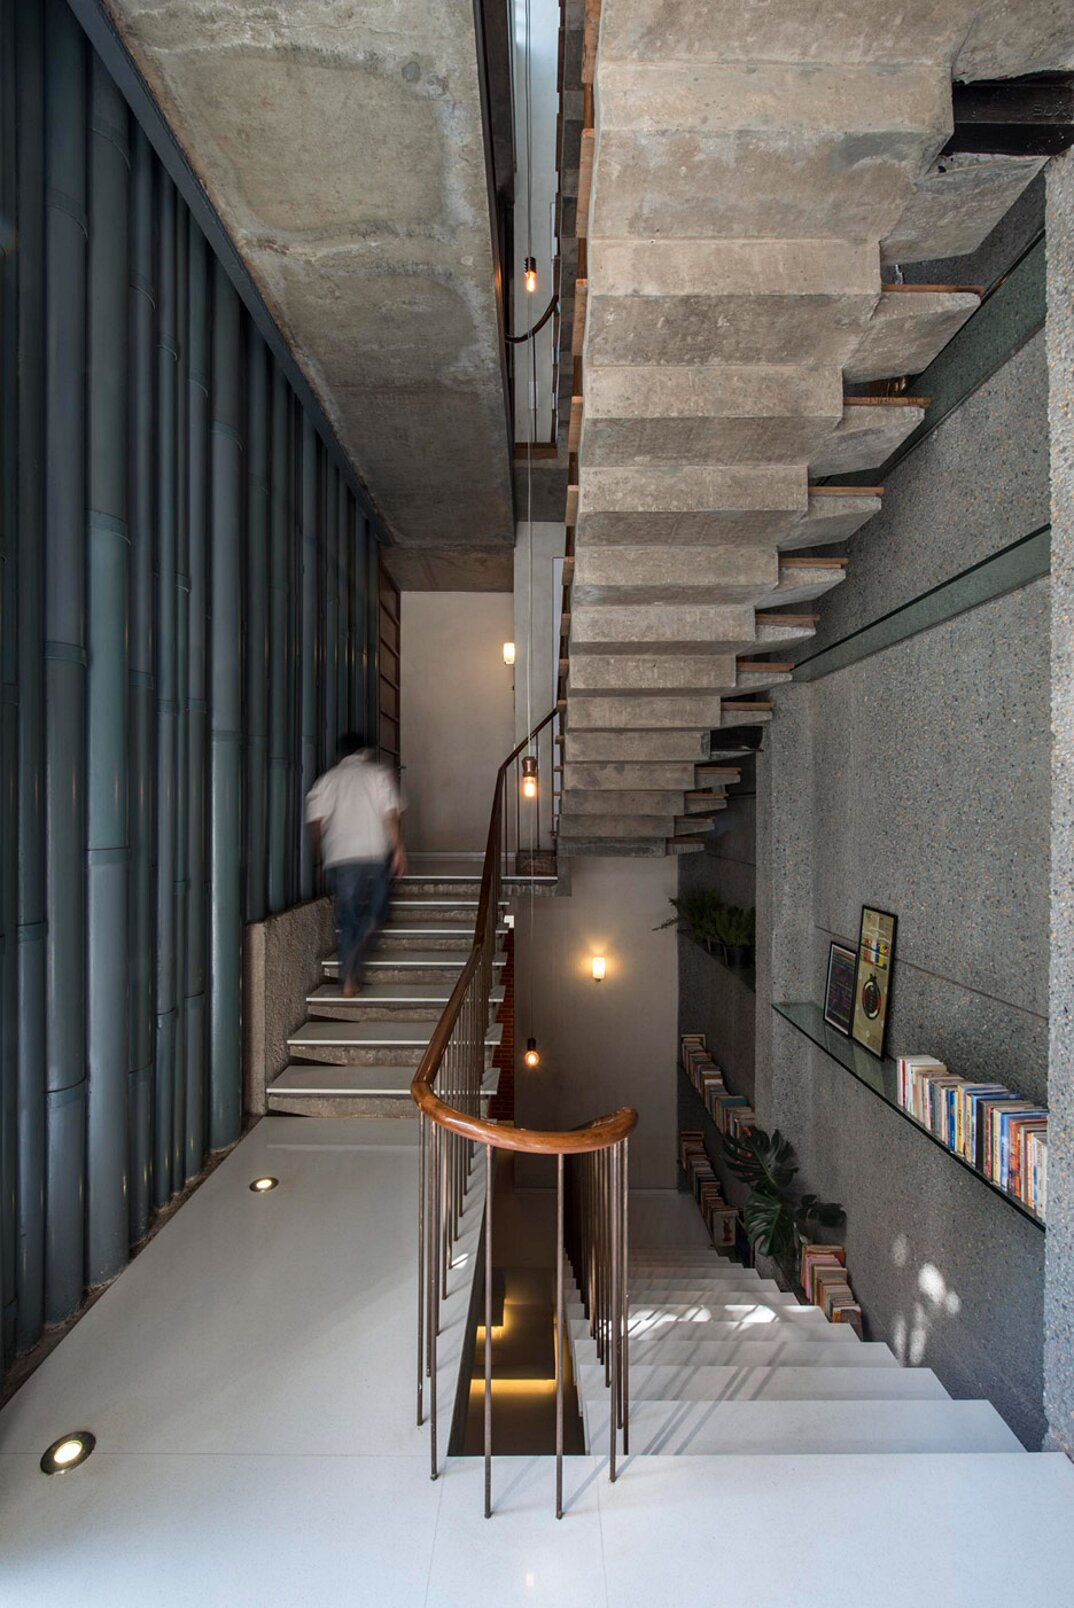 edificio-materiali-riciclati-architettura-sostenibile-mumbai-sps-architects-29